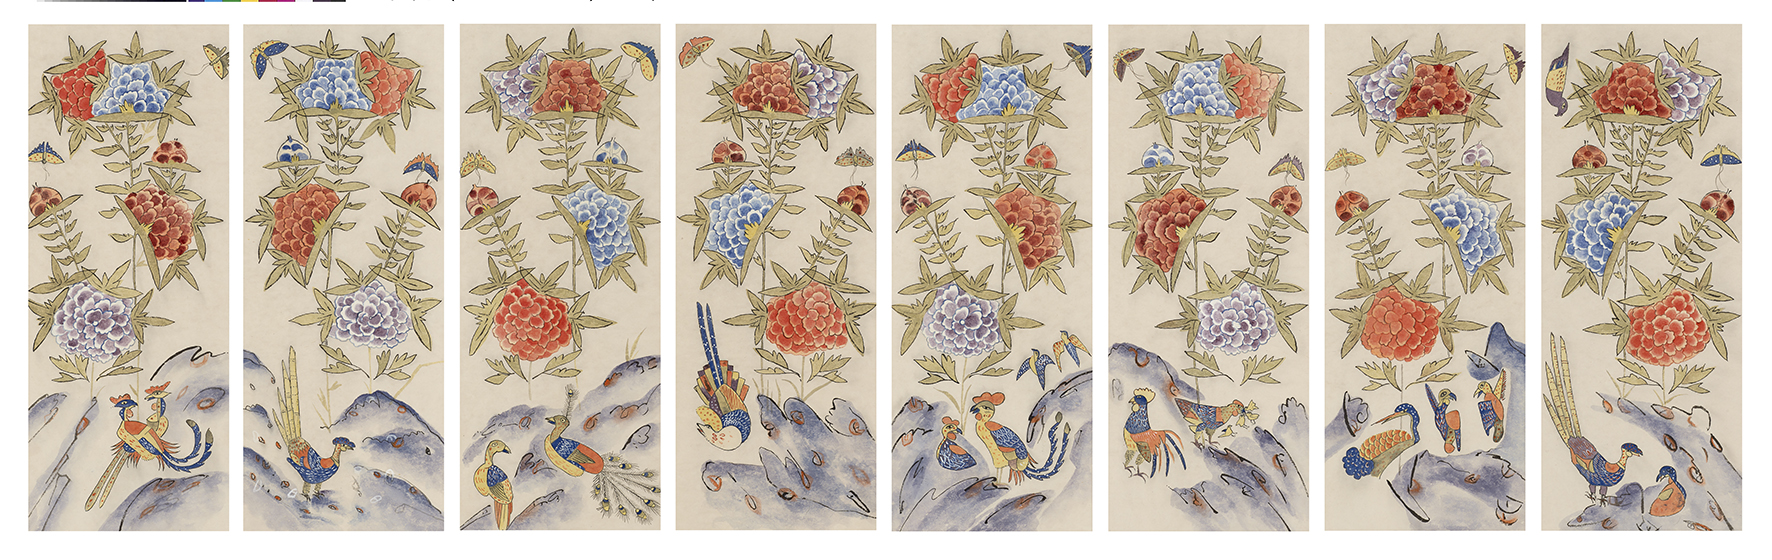 Peonies(Morando), 2015, Color on Korean paper, (28.5 x 73 cm) x 8panels